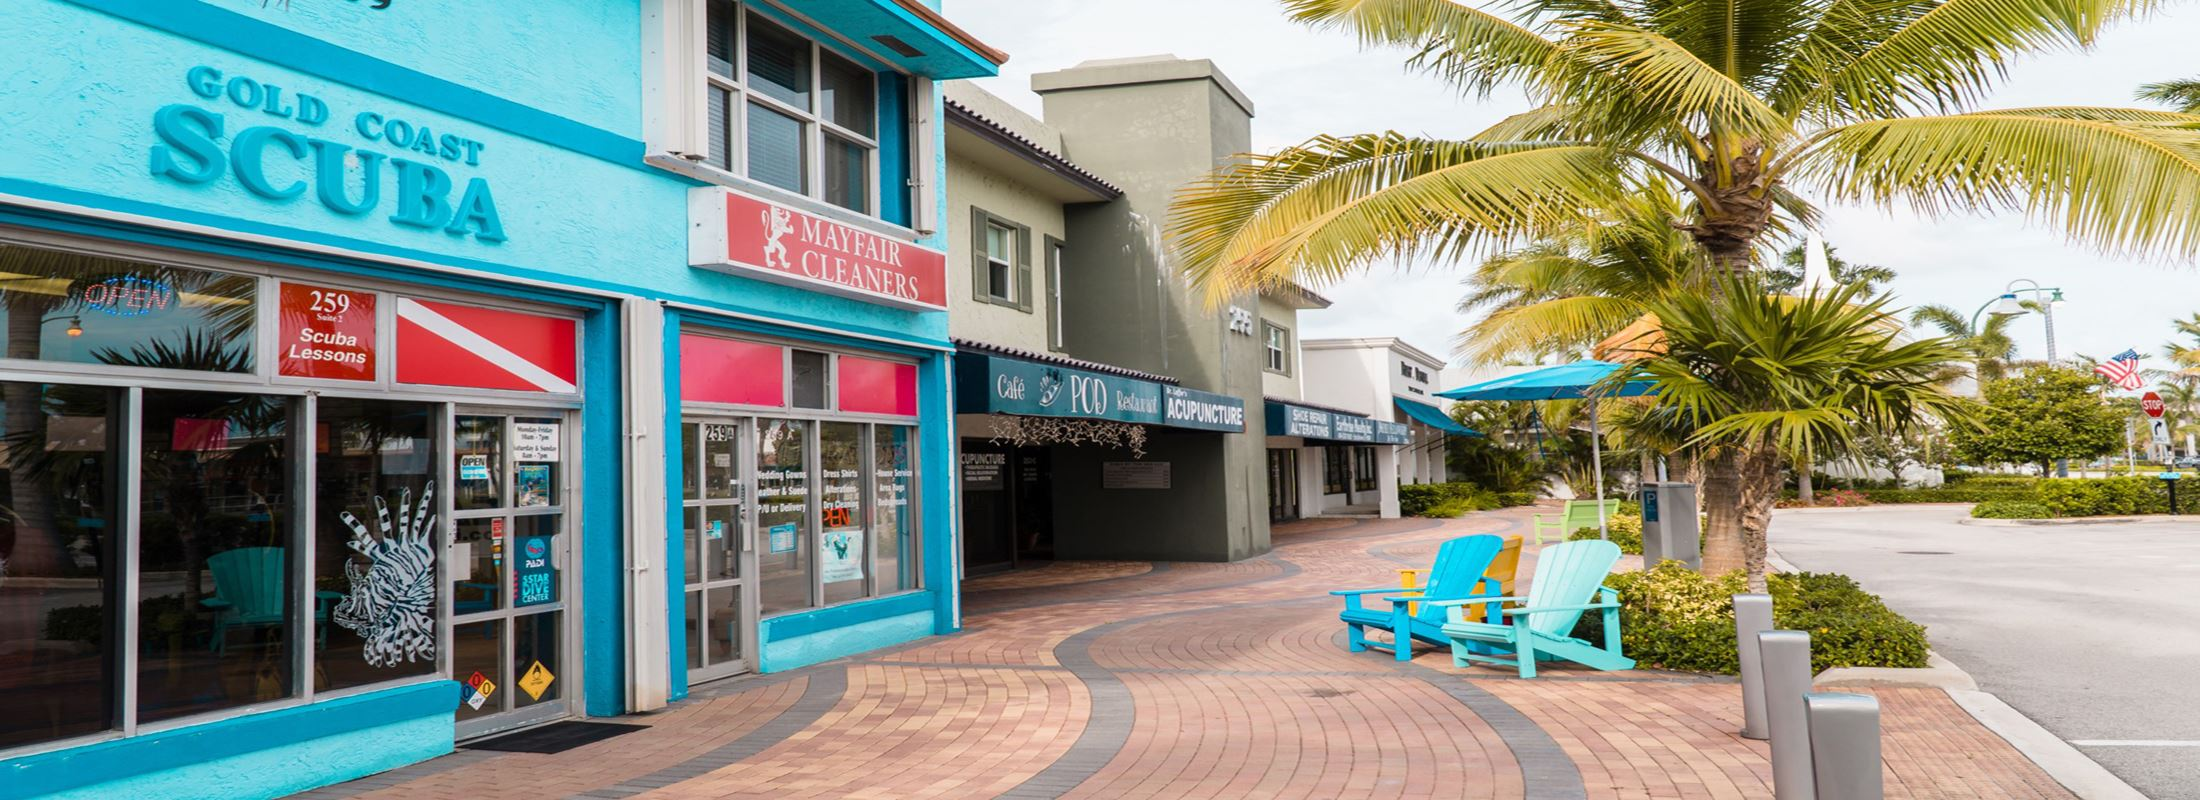 Lauderdale-By-The-Sea Sea Fan Plaza Businesses